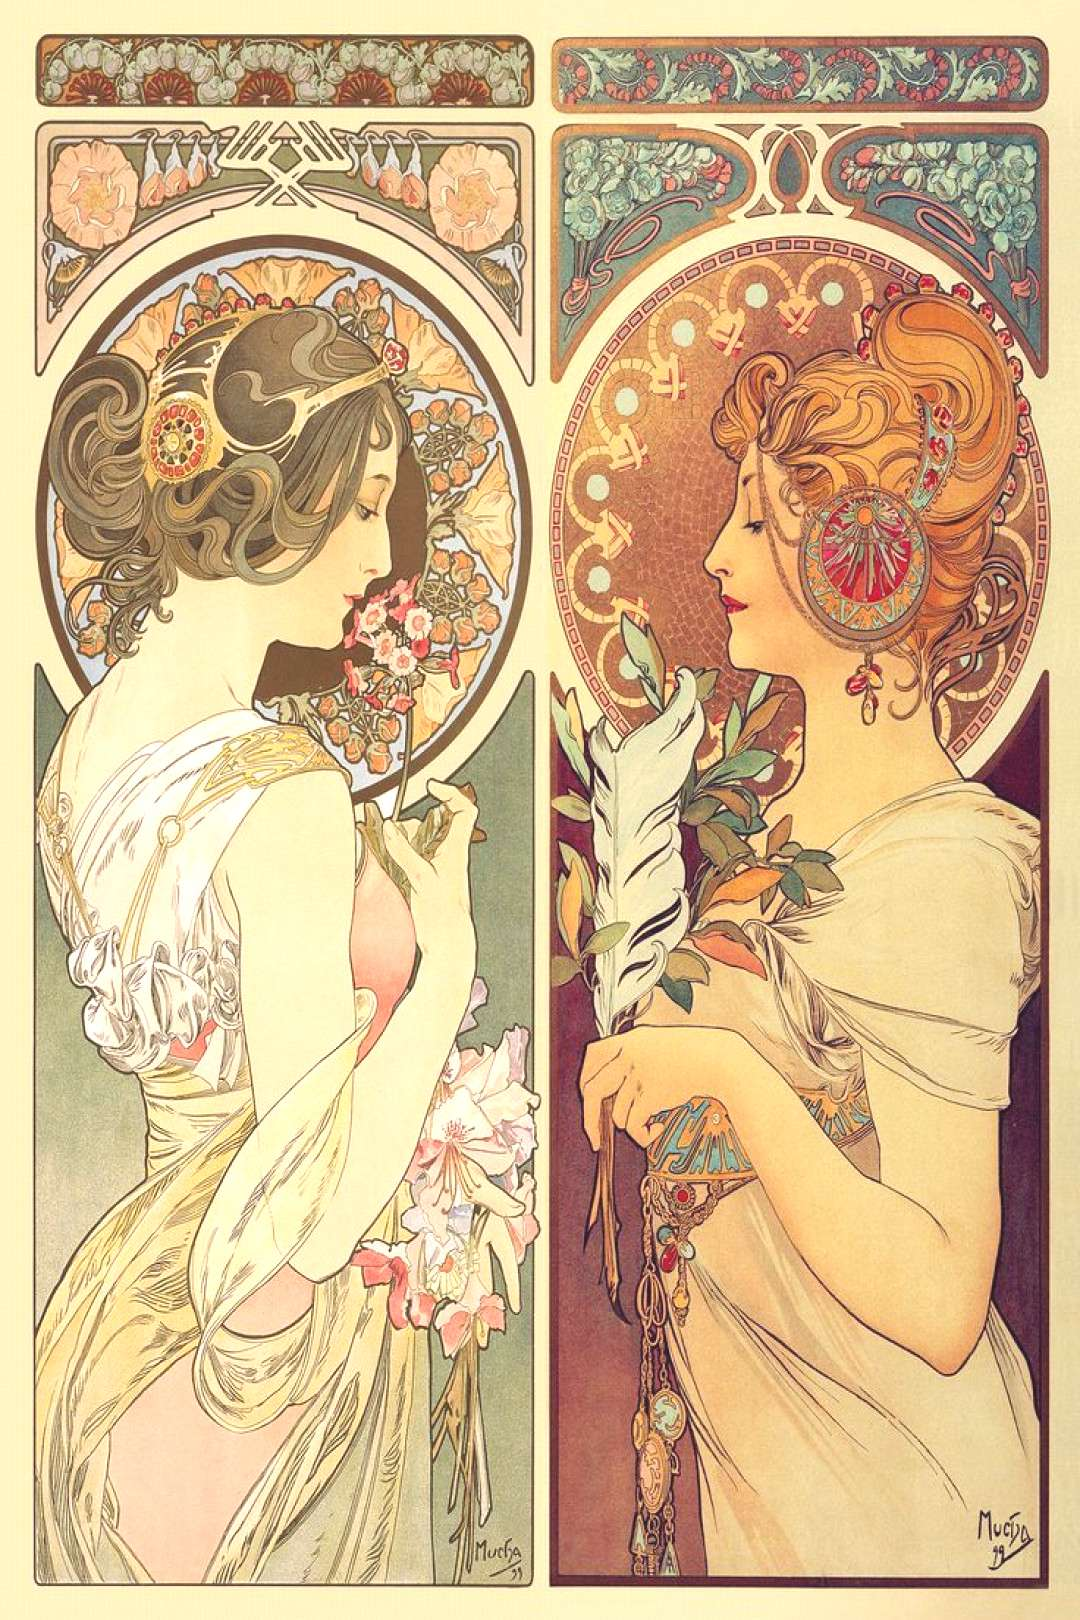 Mucha's Feather & Cowslip makes a great jigsaw puzzle gift for contemporary art enthusiasts. Source